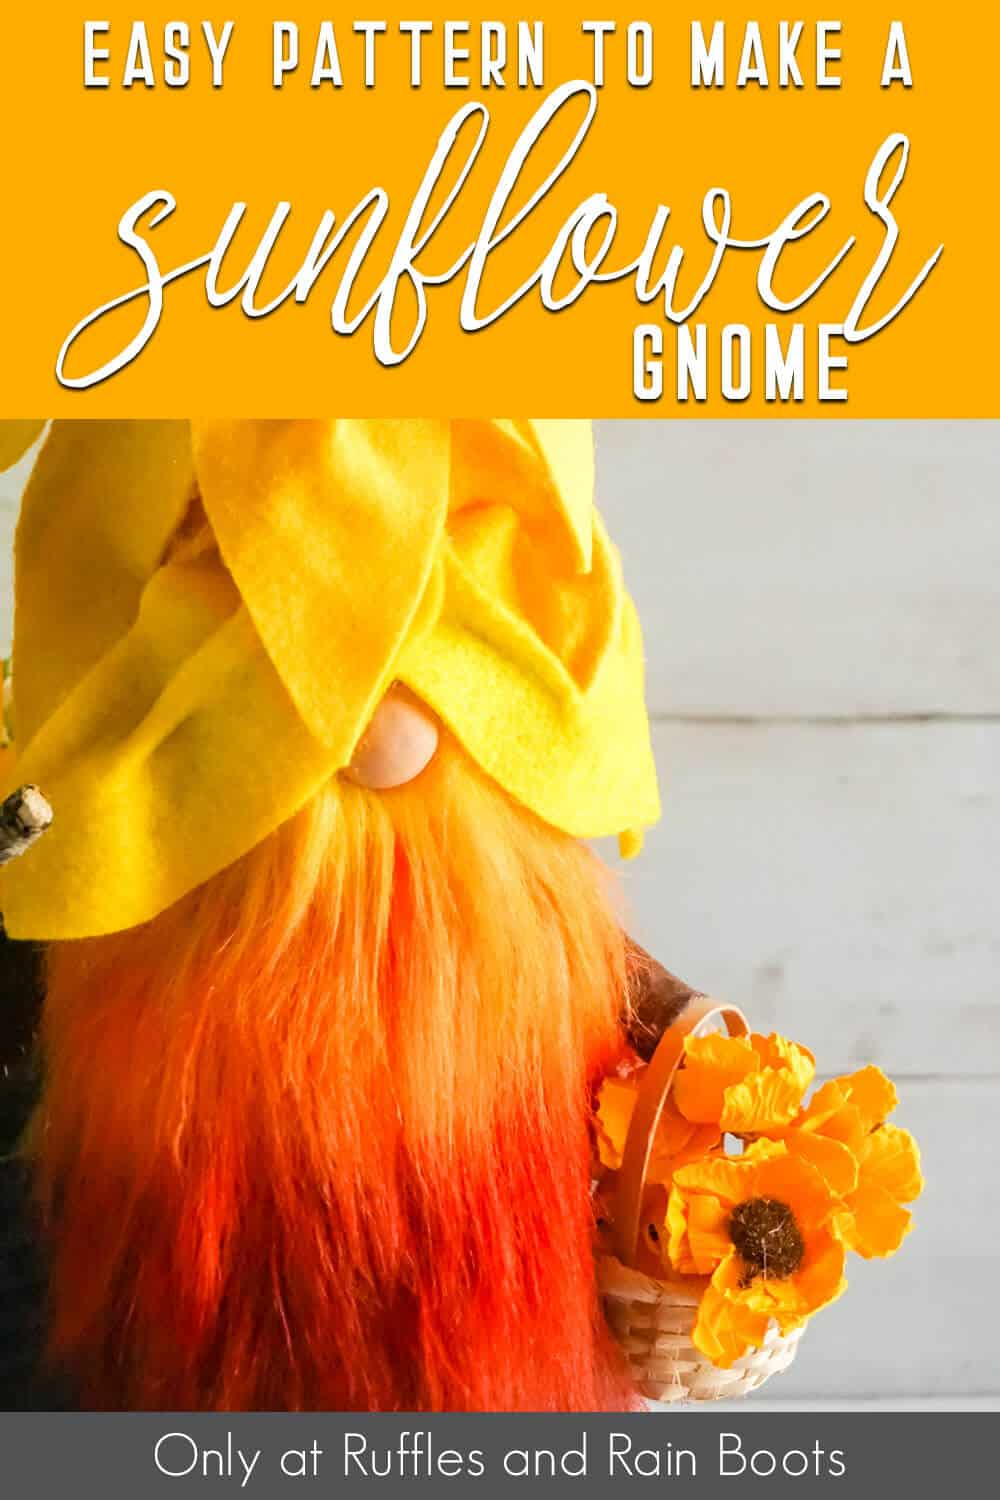 sunflower hat gnome pattern with text which reads easy pattern to make a sunflower gnome